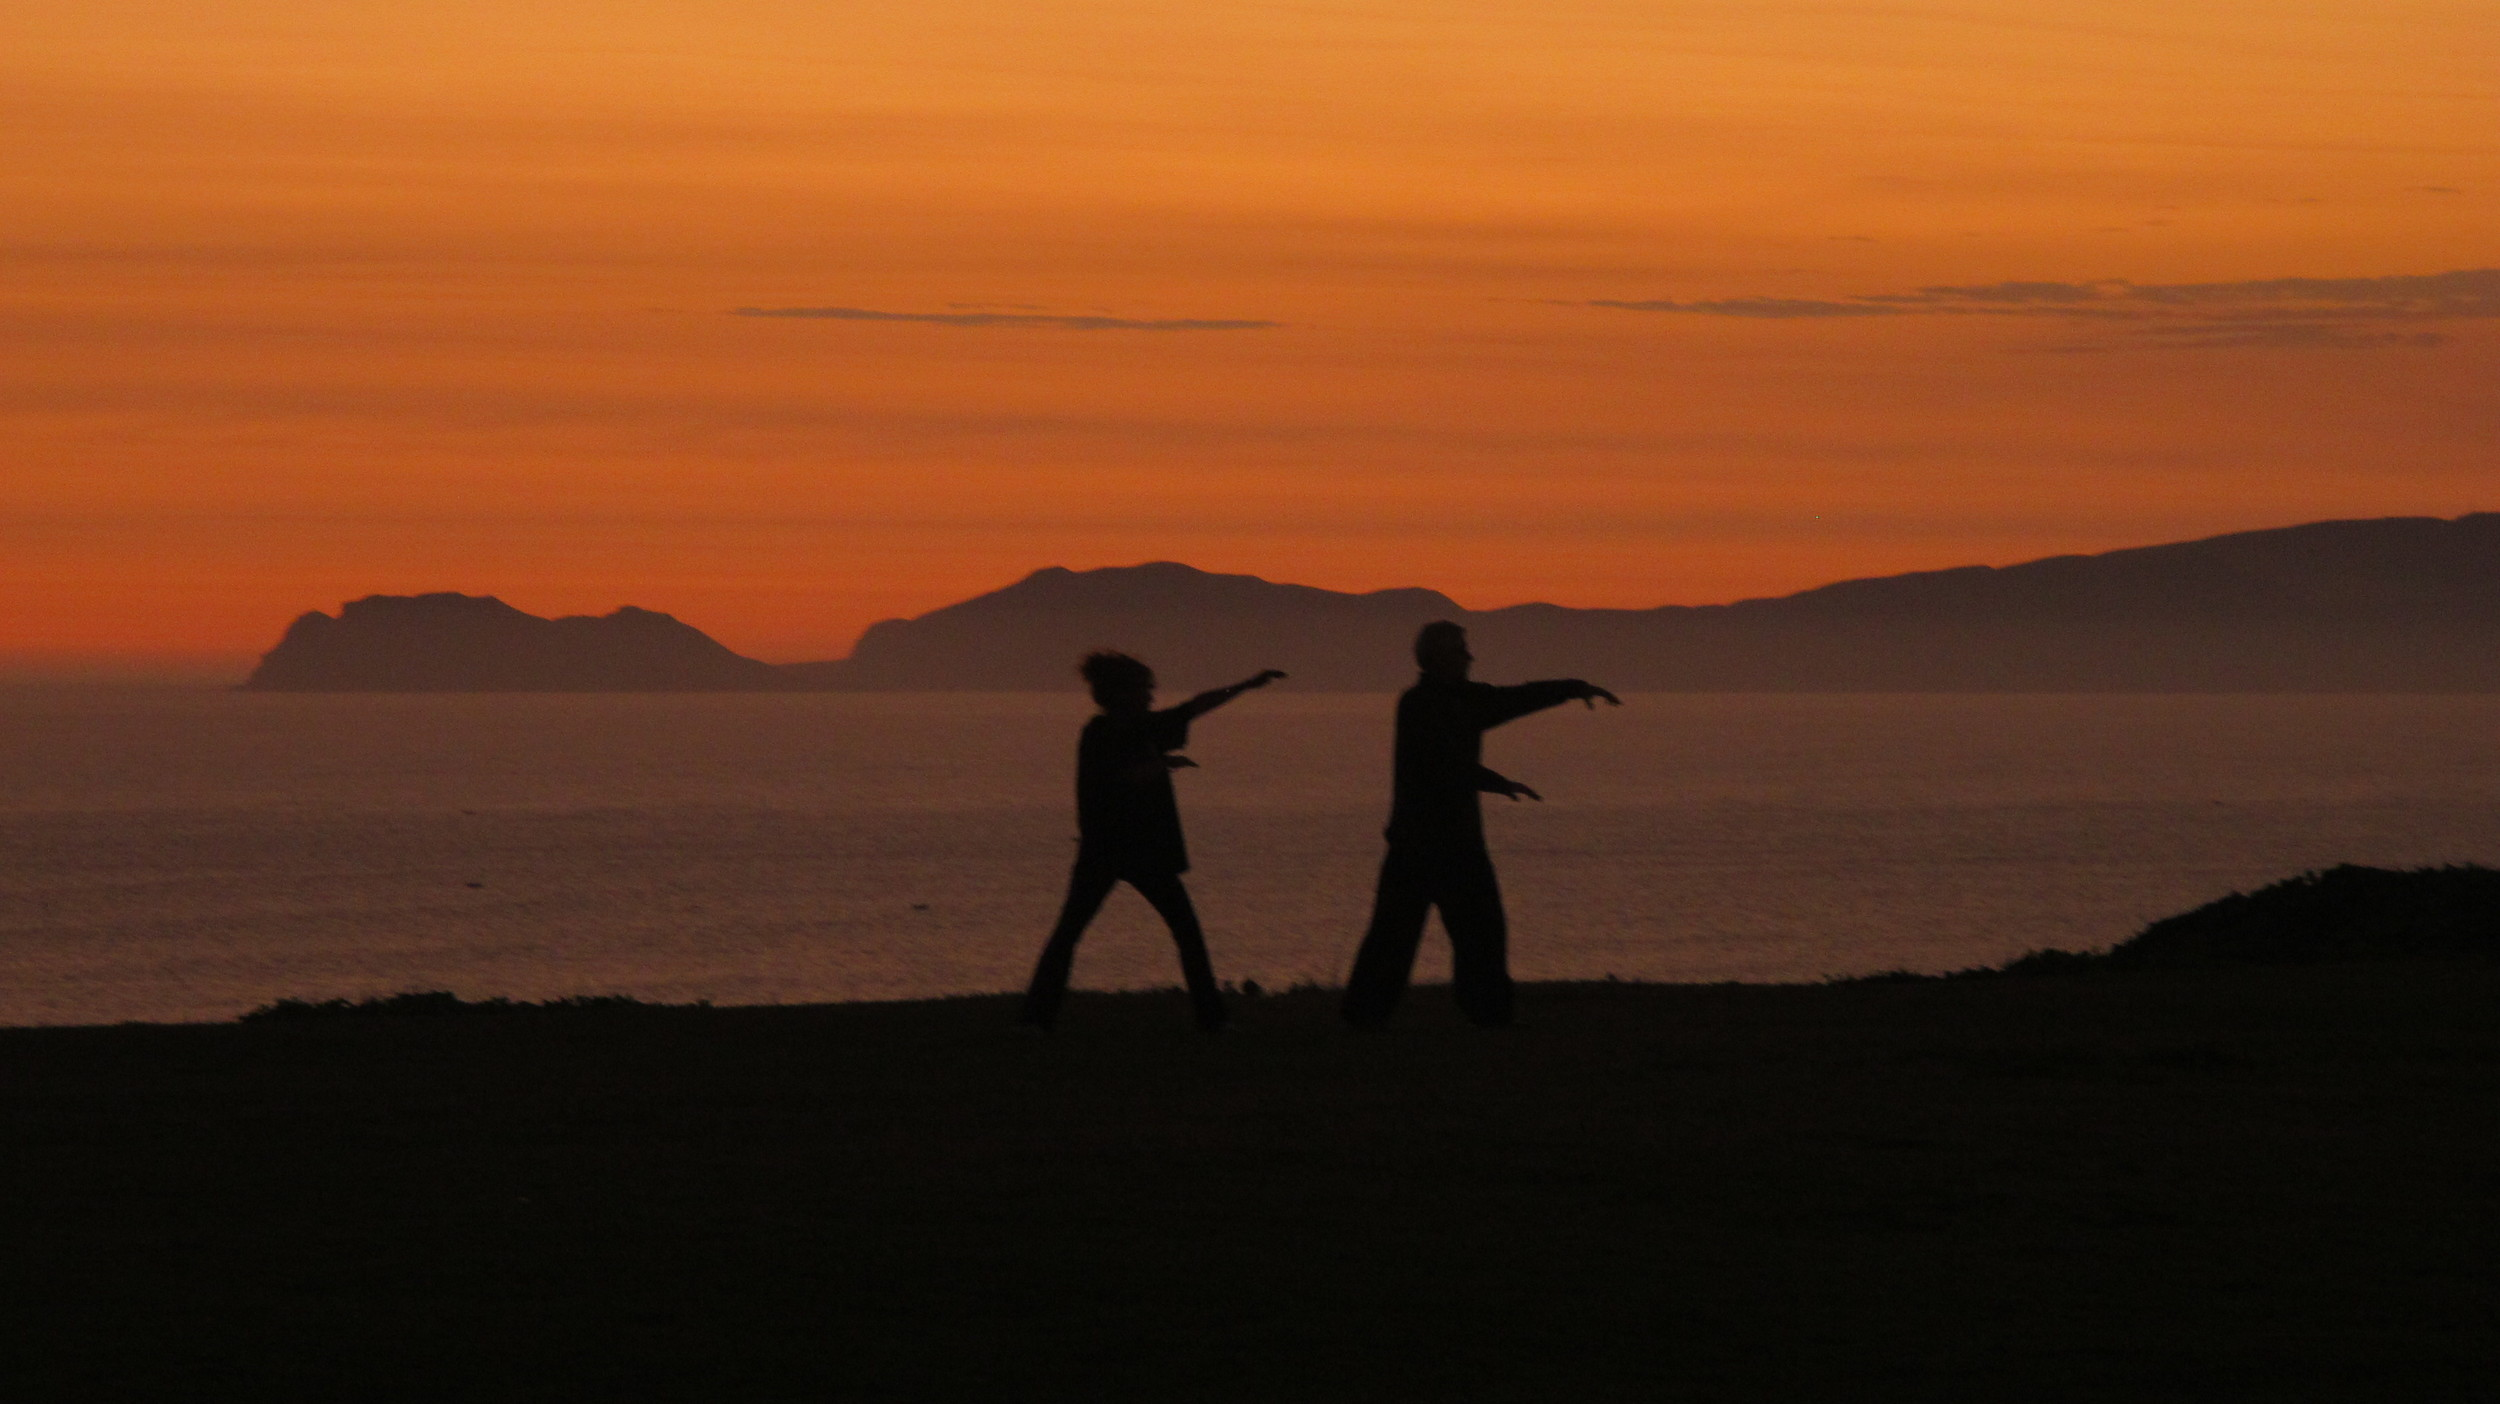 Tai chi practitioners, Miraflores district, Lima, Peru